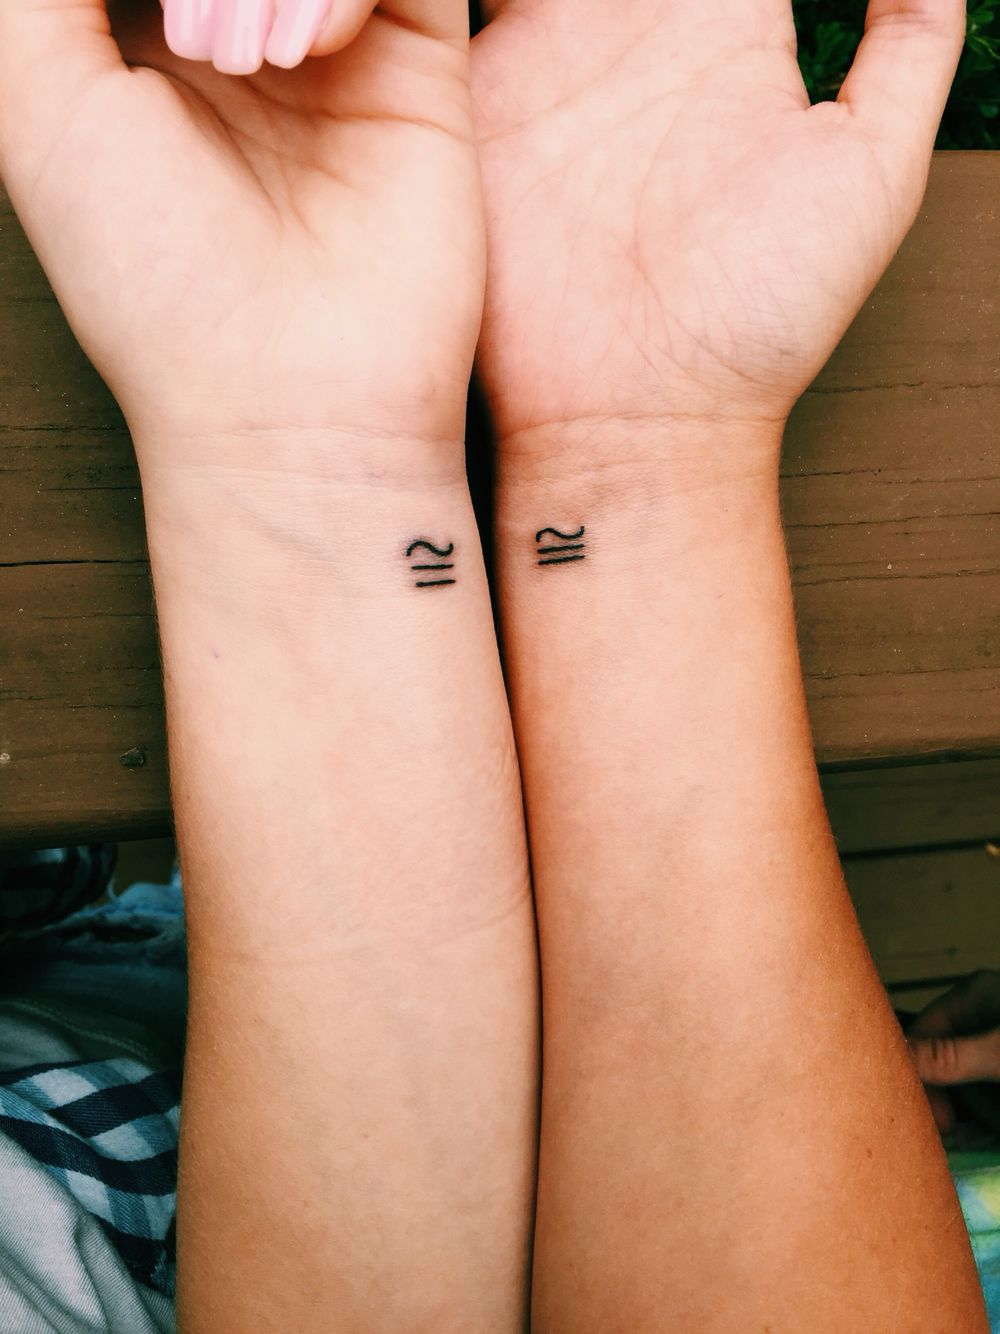 Best Friend Tattoo Congruent Meaning Different Yet The Same